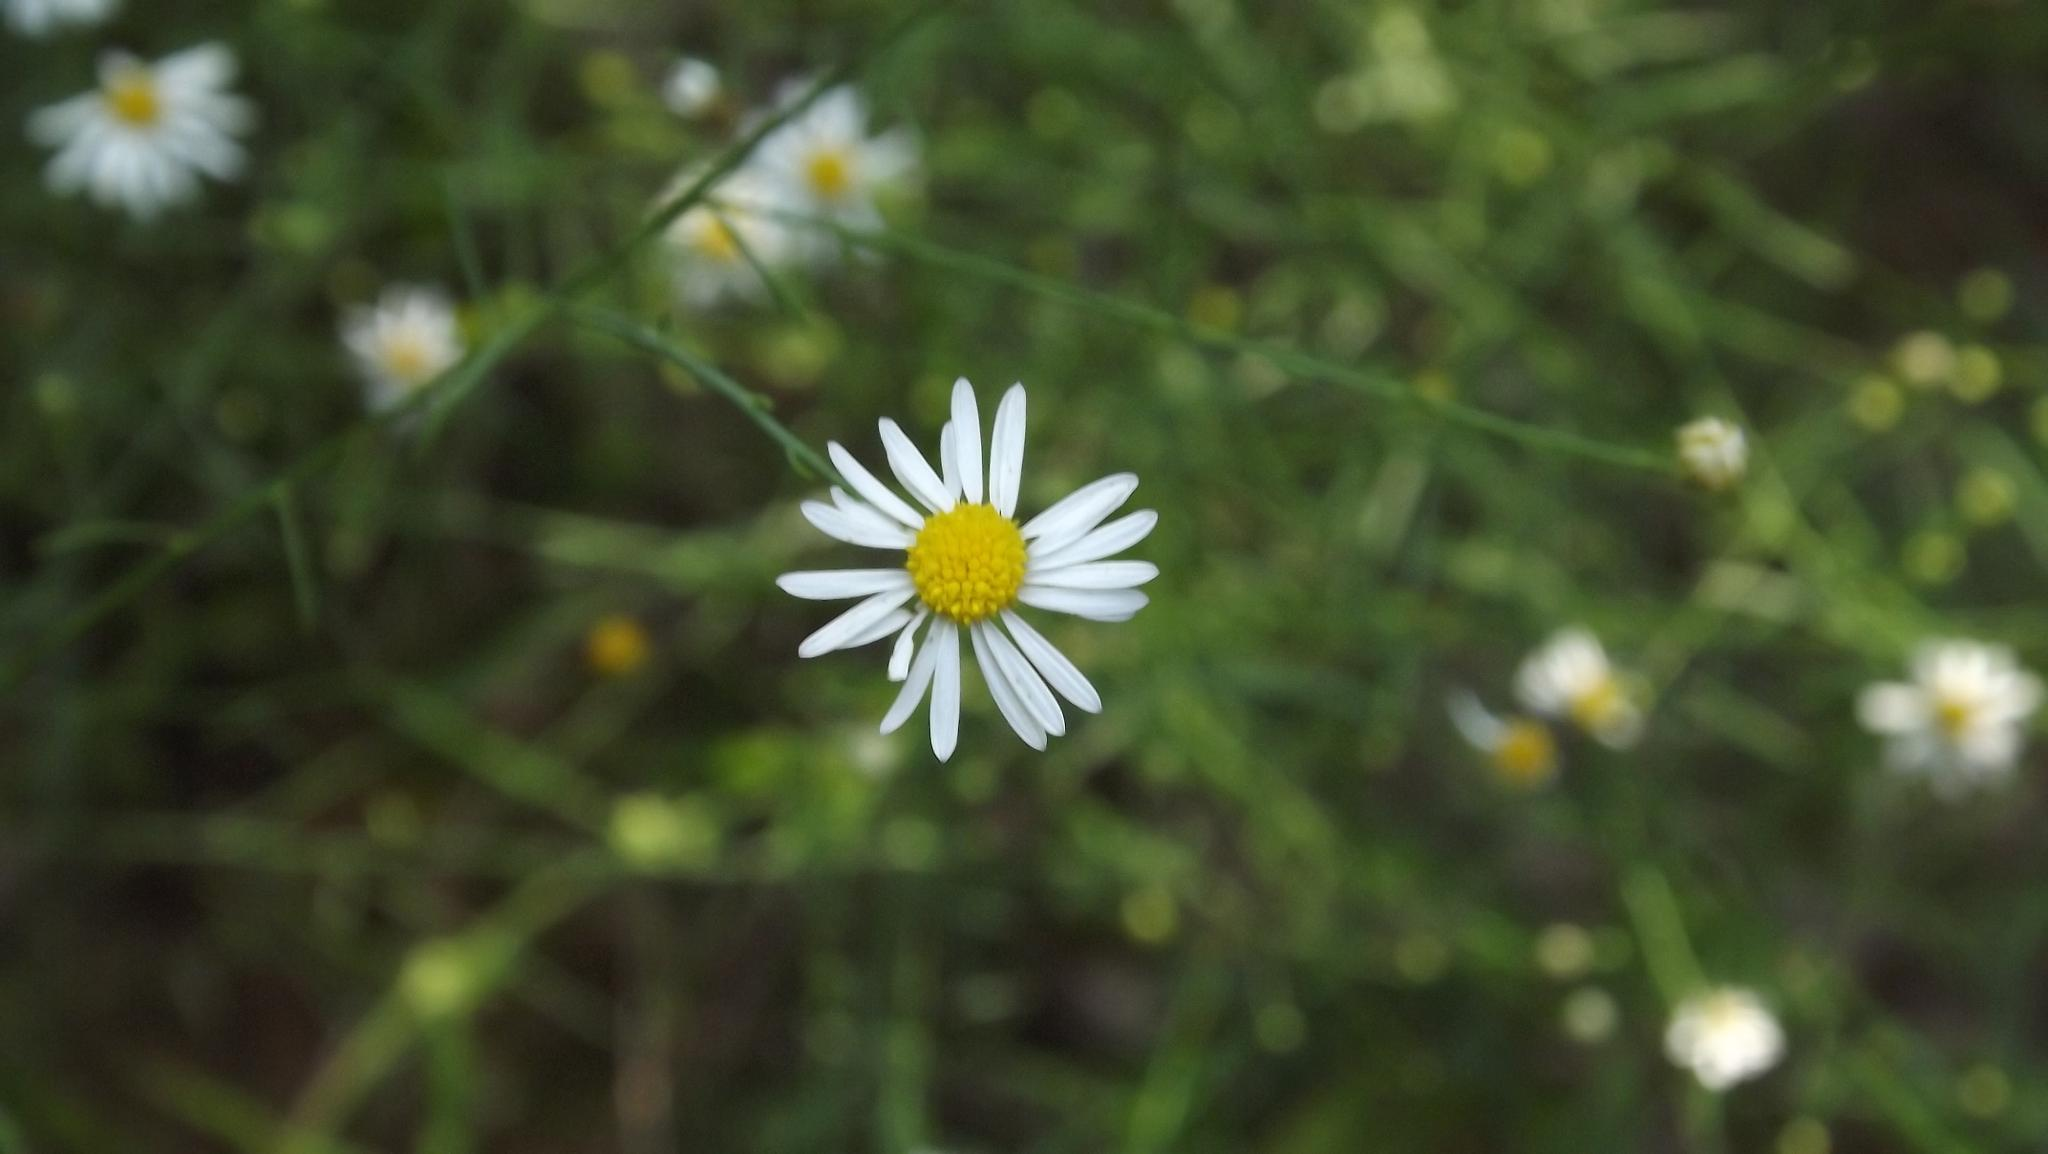 lil daisy by laura.r.allen.5